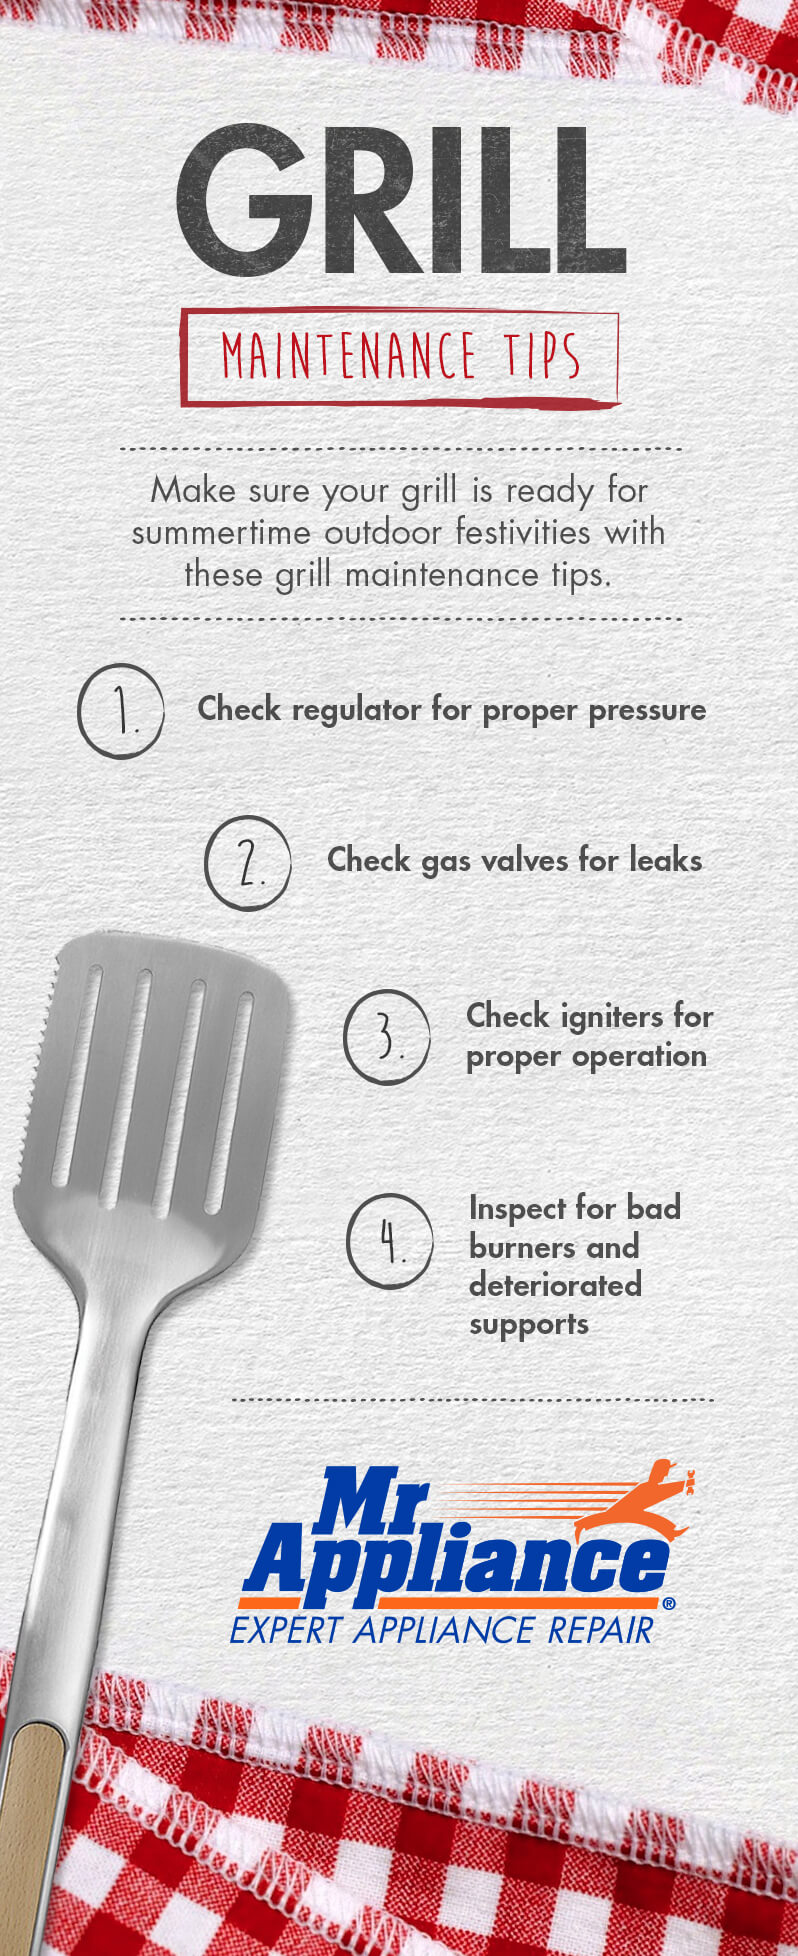 Grill Maintenance Tips Infographic